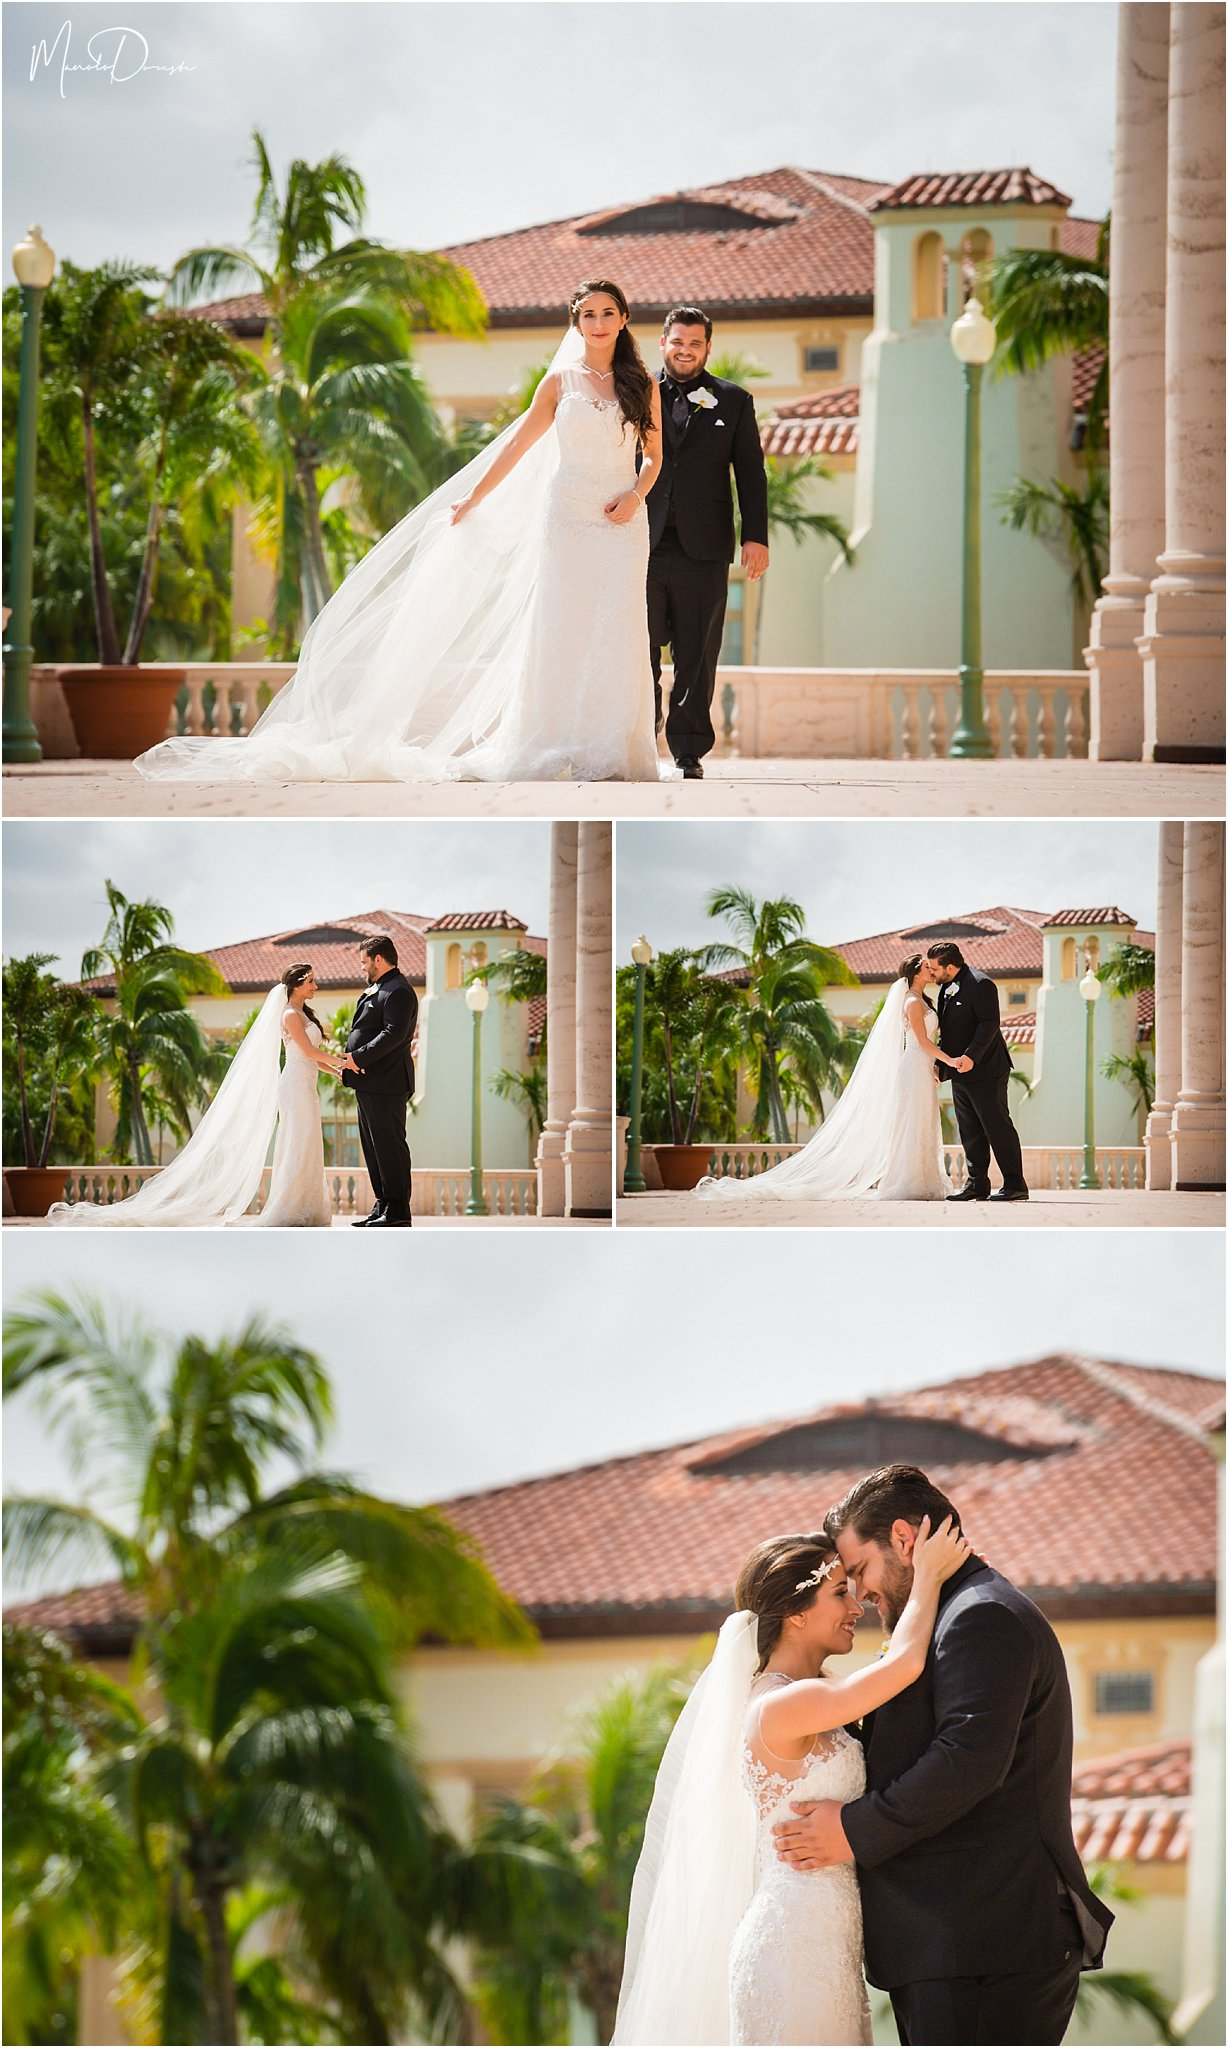 0159_ManoloDoreste_InFocusStudios_Wedding_Family_Photography_Miami_MiamiPhotographer.jpg